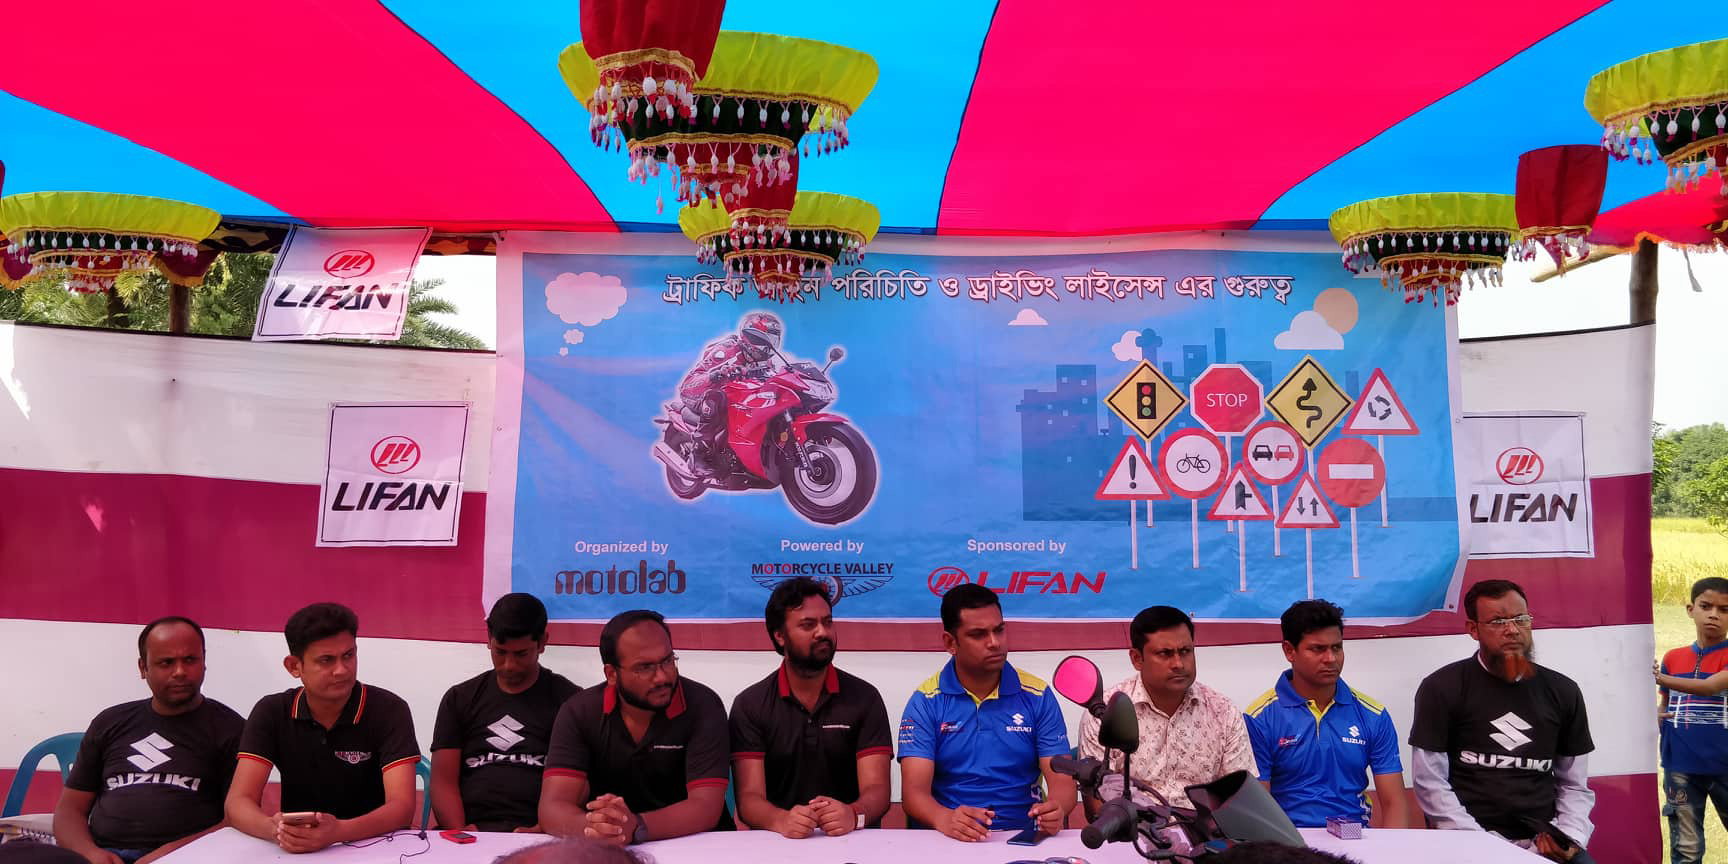 Suzuki-Hayate-Test-Ride-Event-at-MOTOLAB-Guests